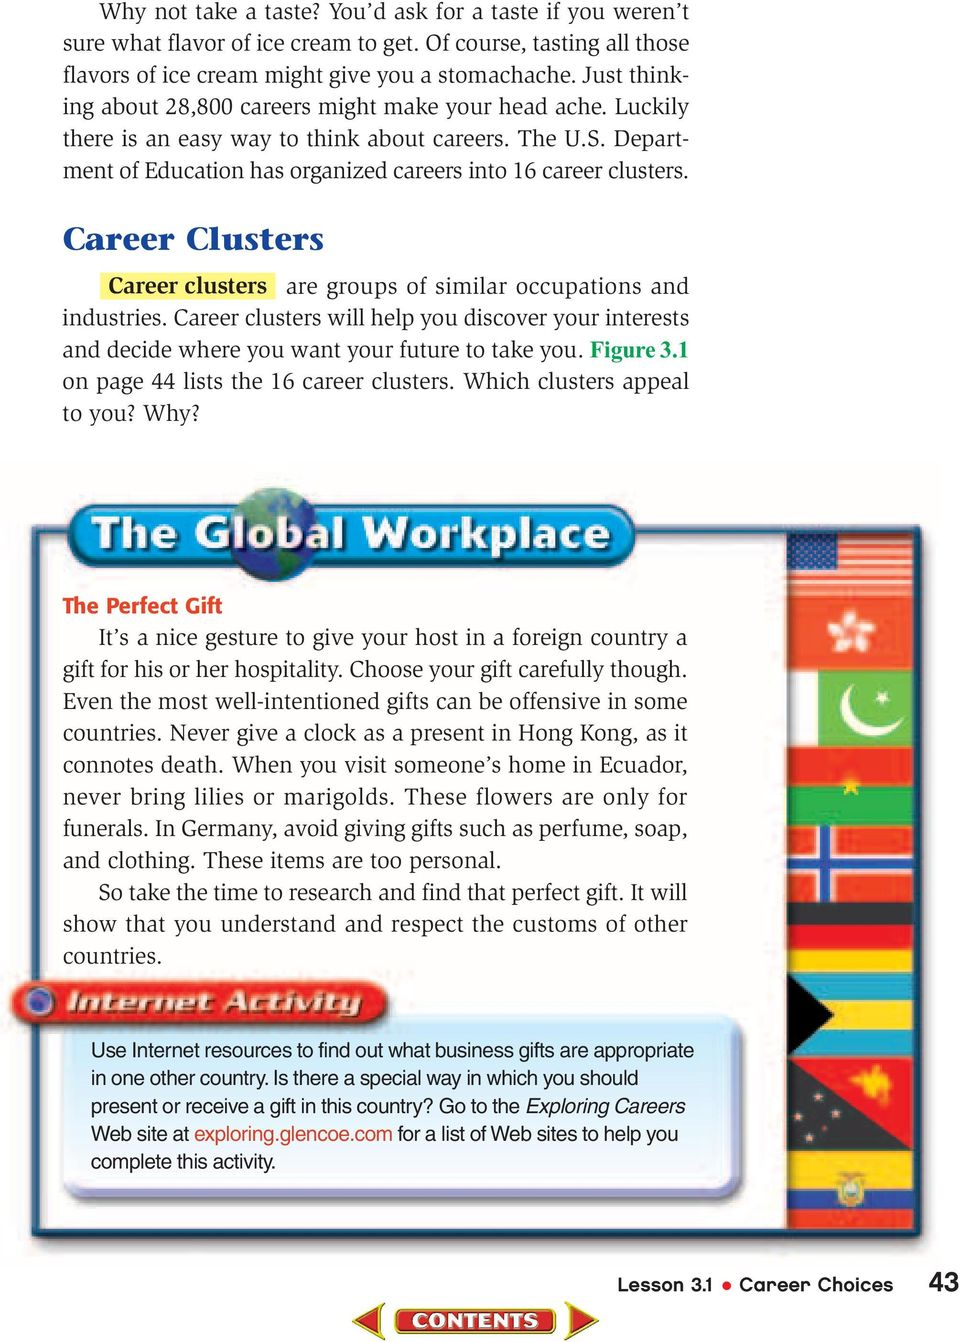 worksheet Career Cluster Worksheet researching careers chapter 3 career cluster you will explore the clusters are groups of similar occupations and industries help